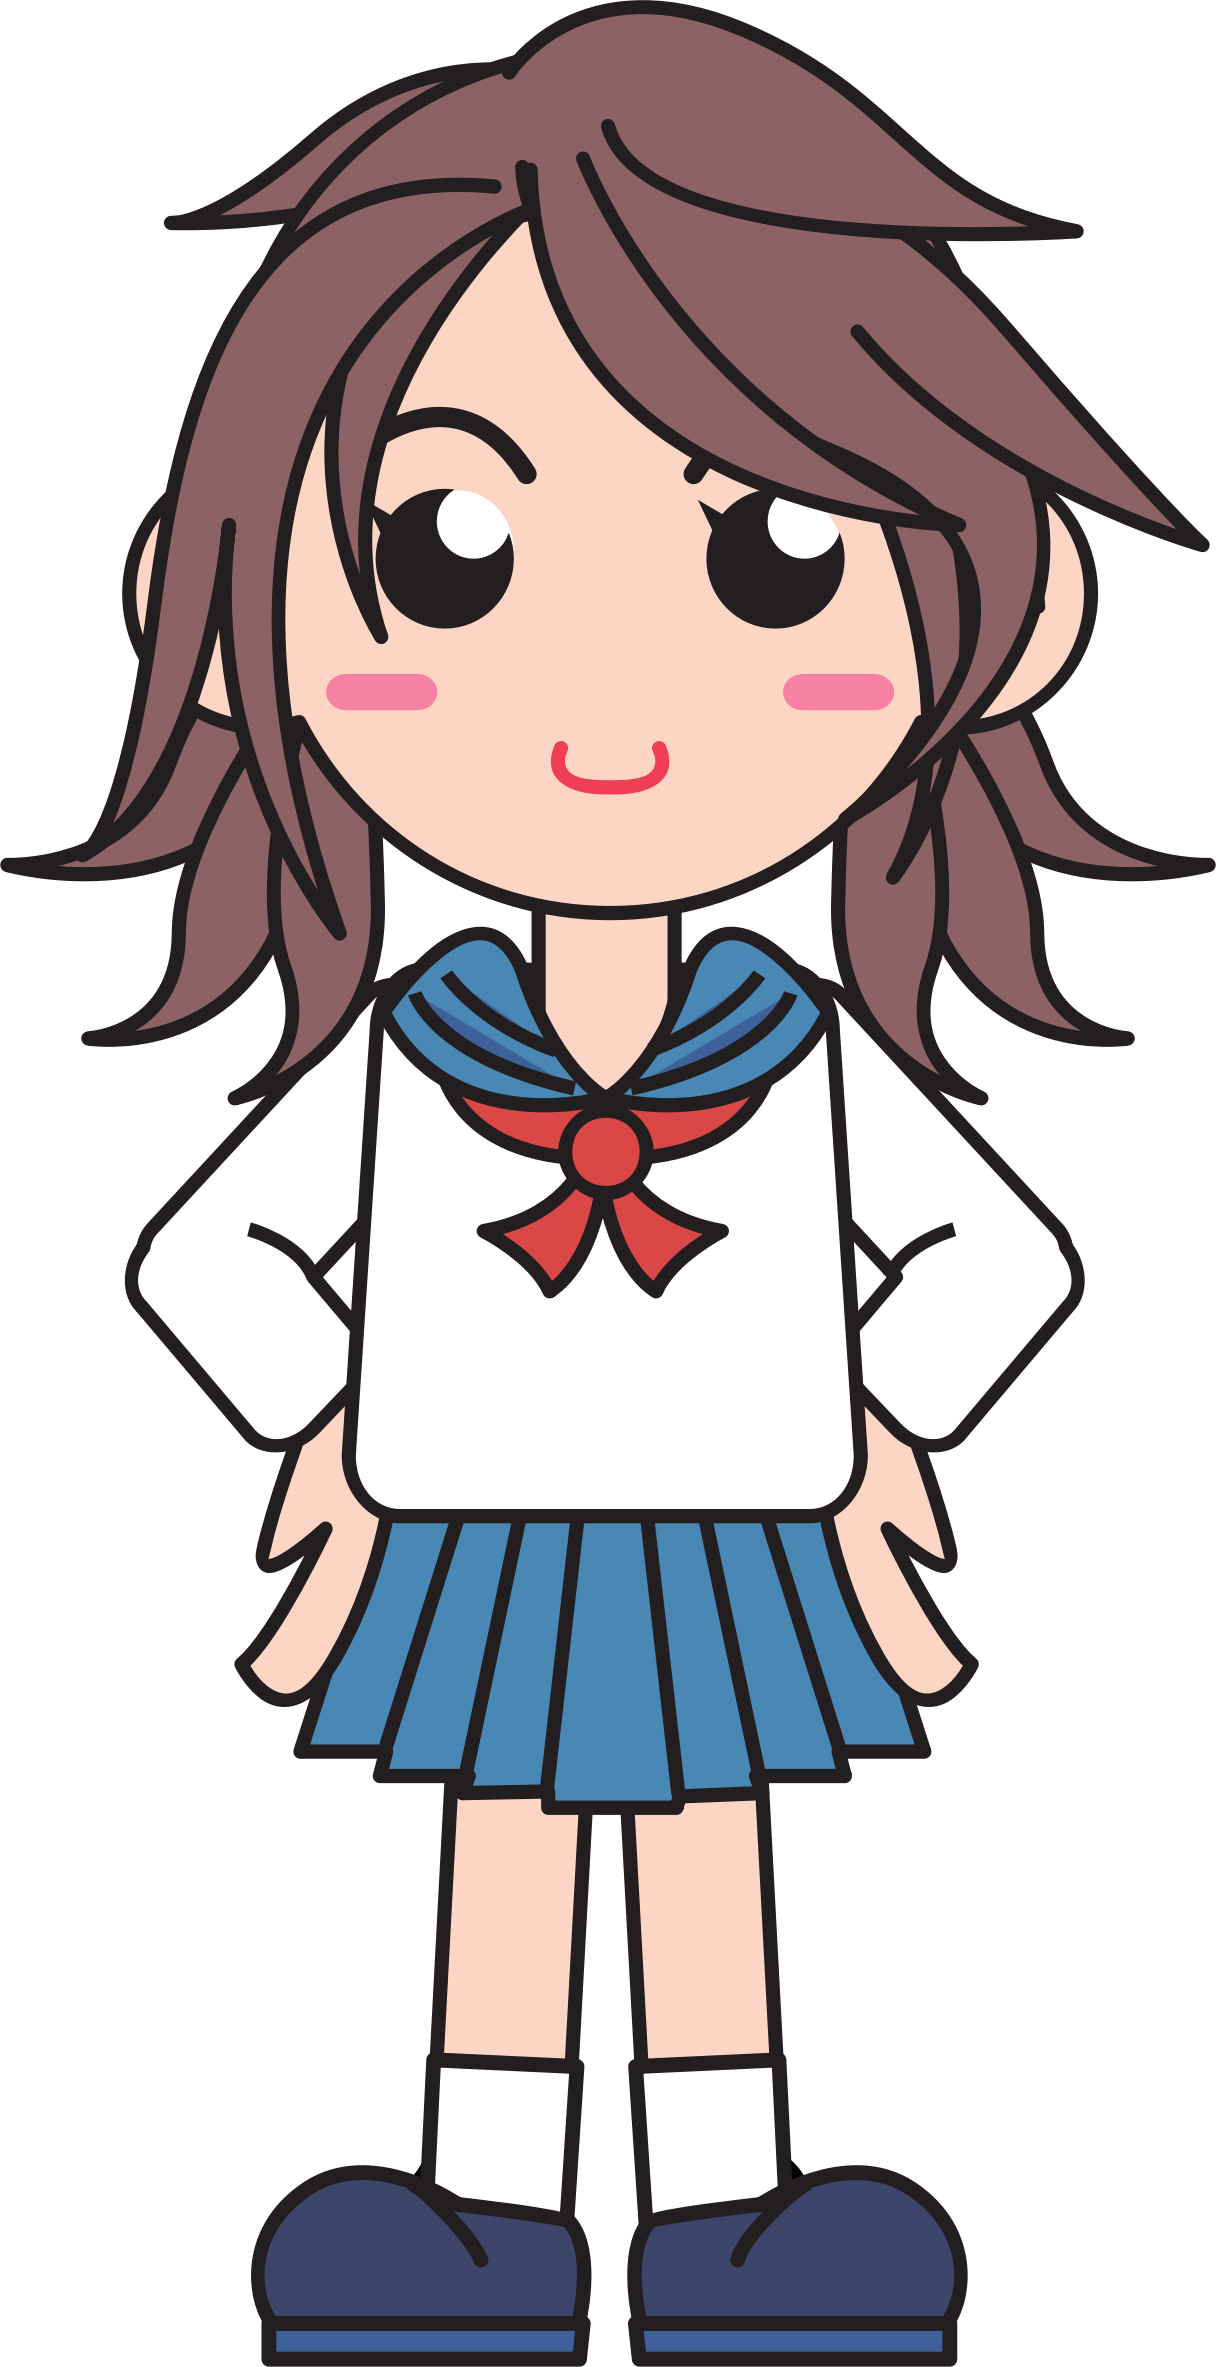 Driver clipart animated. Japanese school girl big